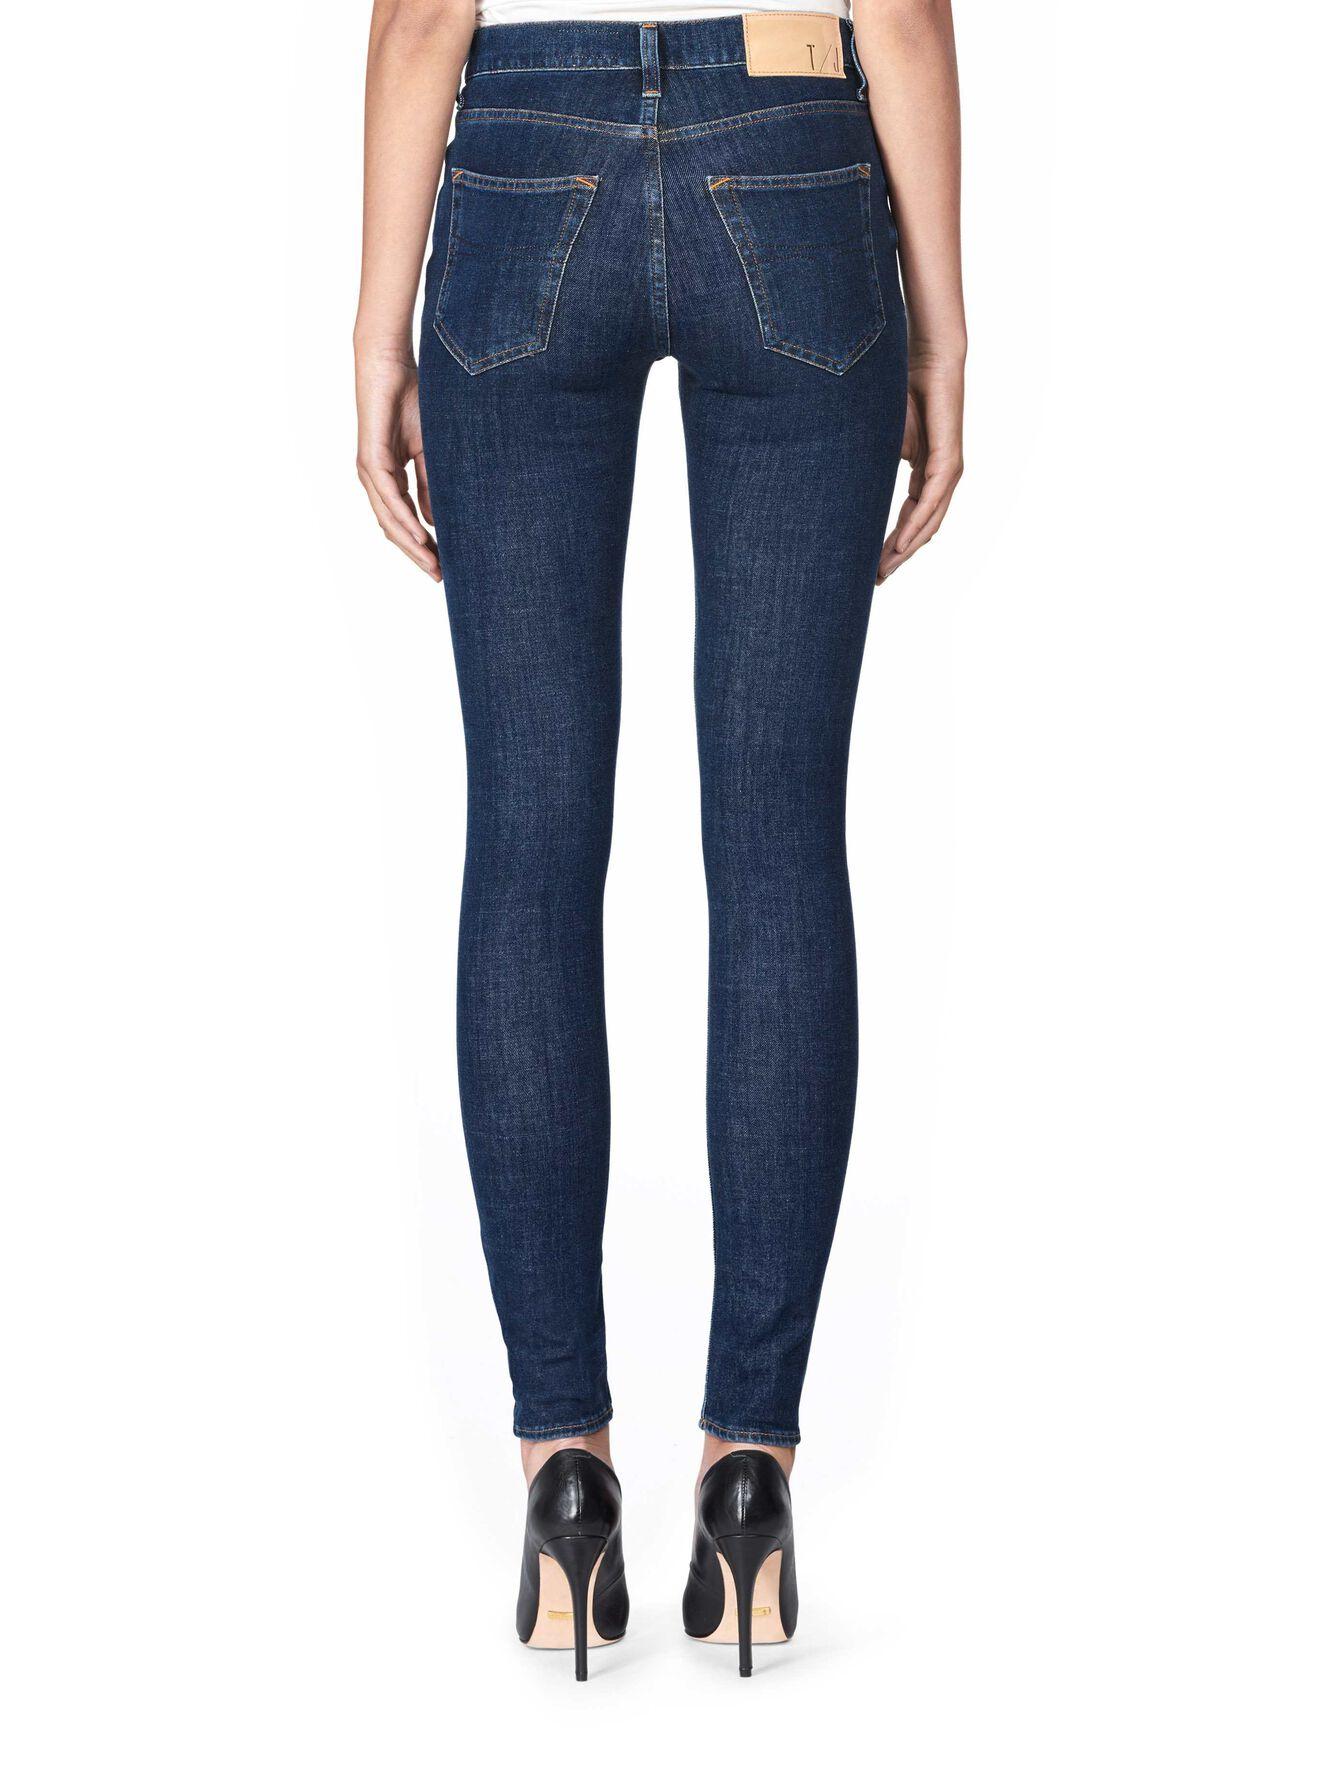 Kelly jeans in Dust blue from Tiger of Sweden